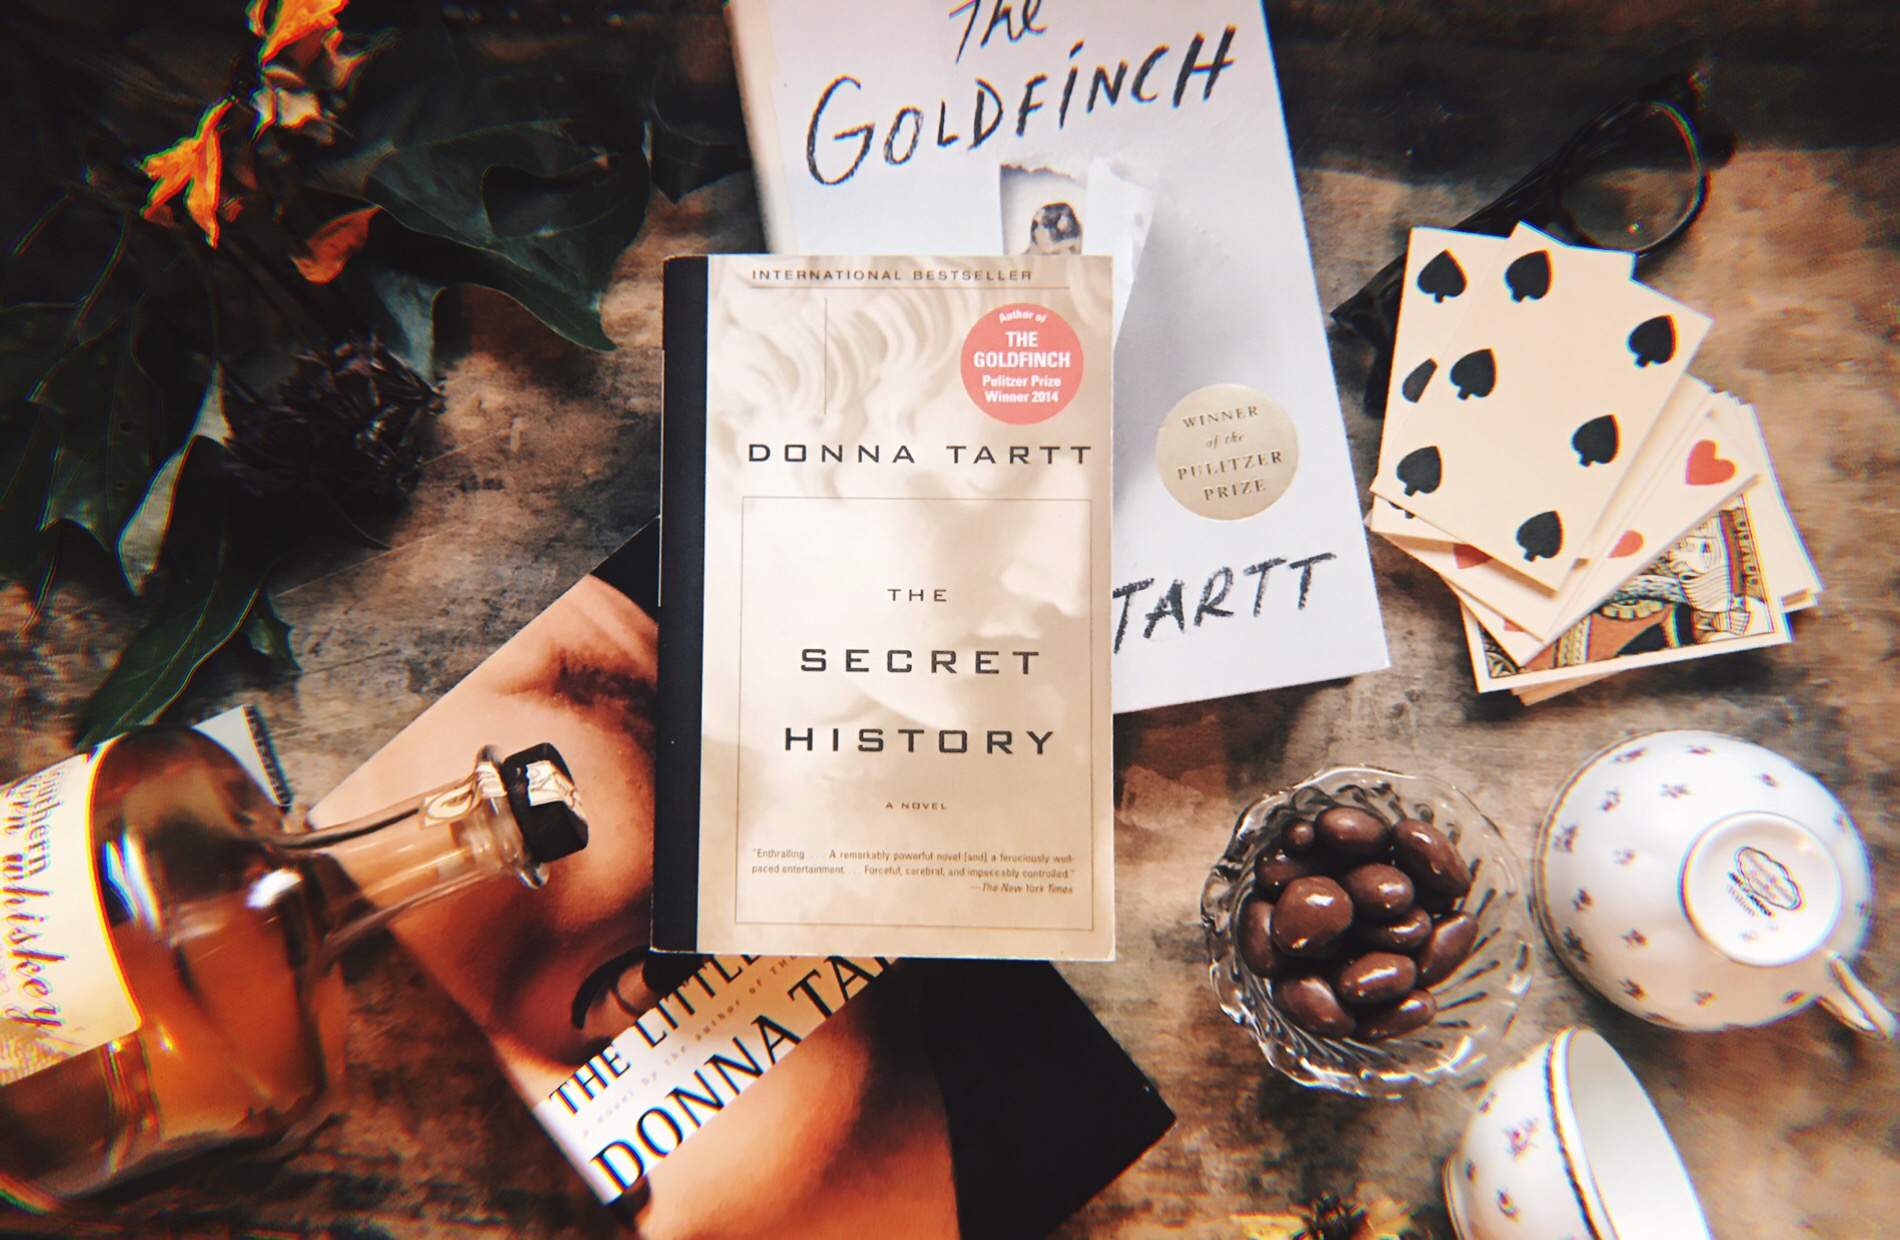 Tartt's novels, and a selection of items mentioned throughout. Photo by Raquel Reyes.